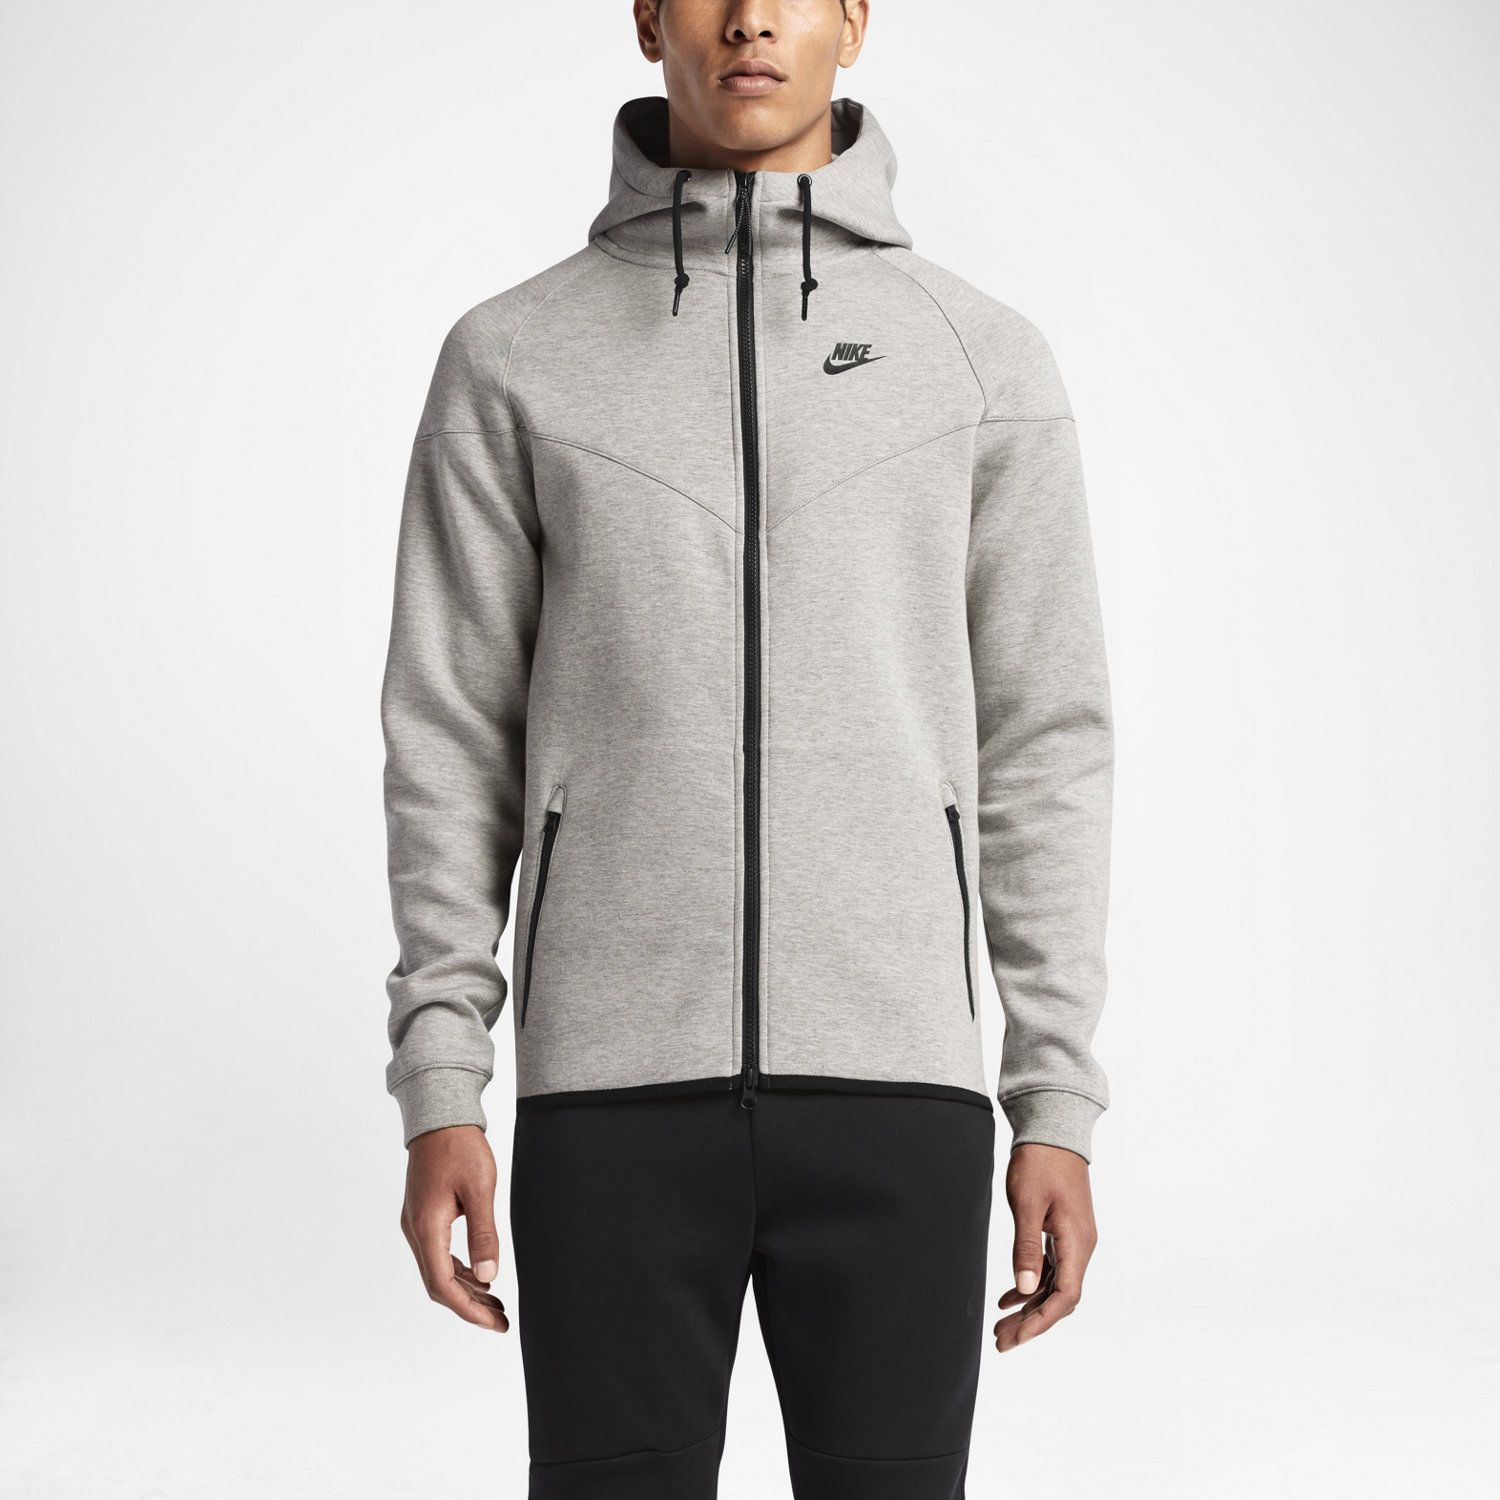 Men s Nike Tech Fleece Windrunner Hoodie Jacket Heather Grey Small 545277  065 9875d8c0f8